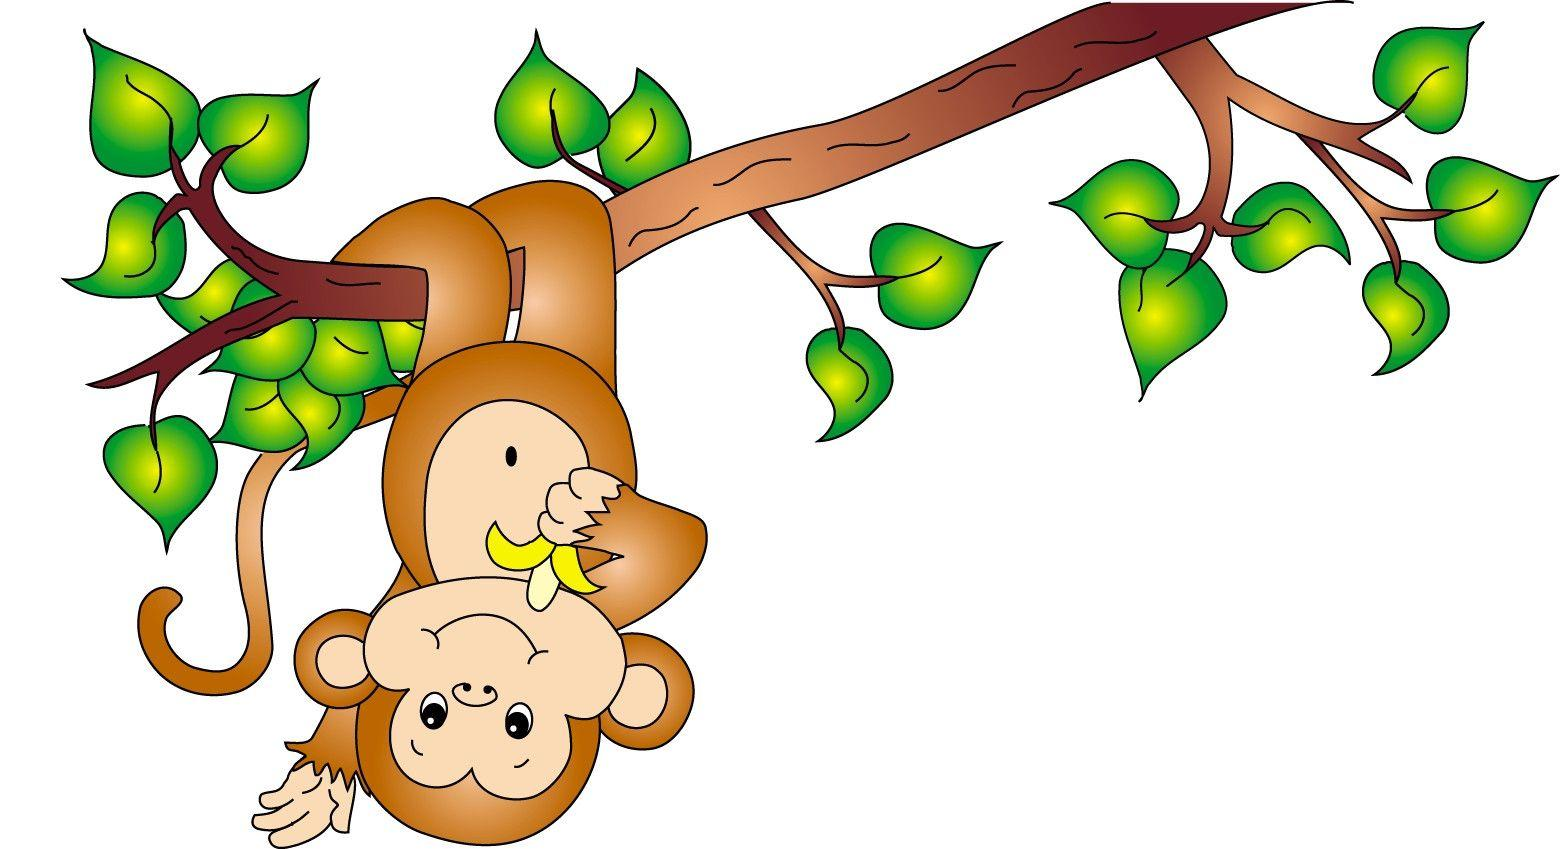 japanese wallpaper cartoon monkey - photo #6